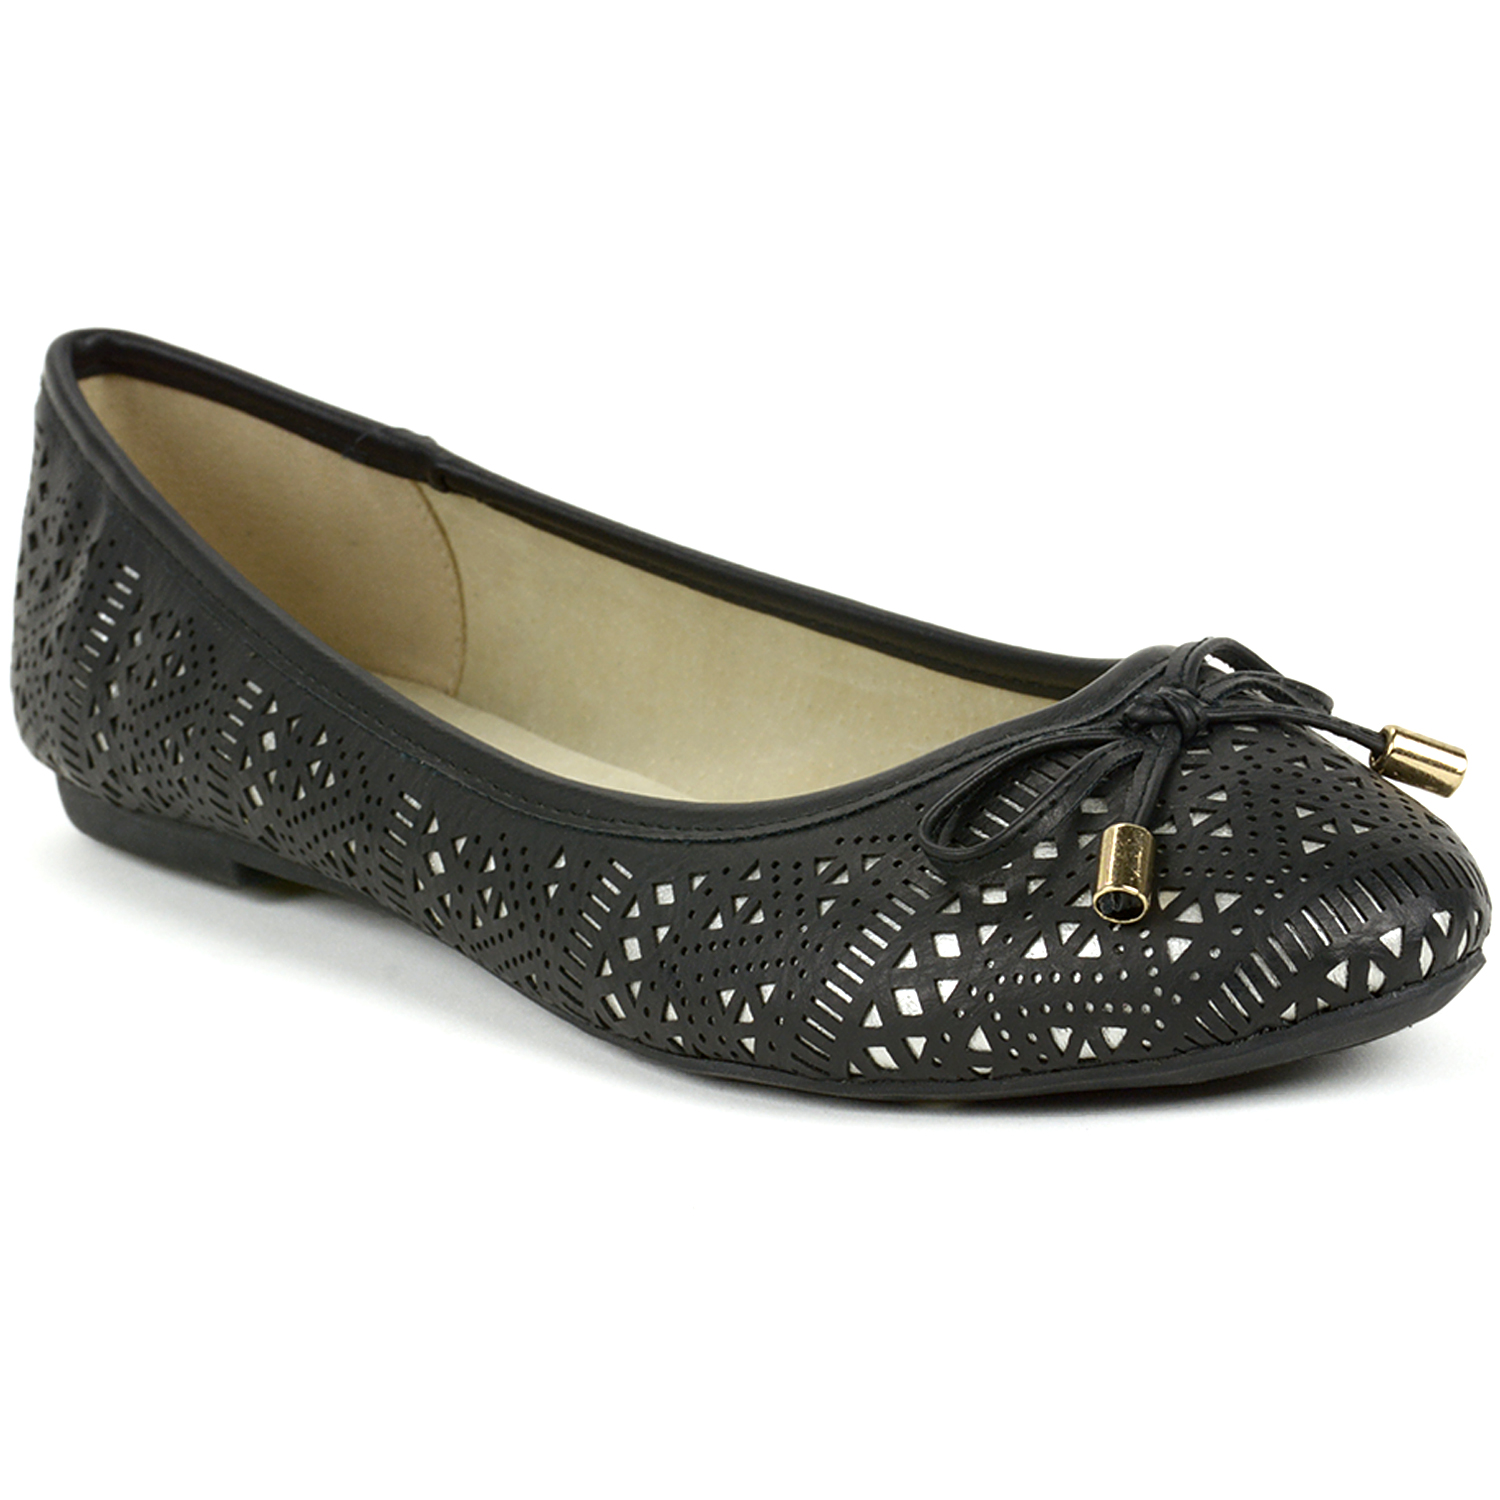 Alpine Swiss Botanic Women's Ballet Flats Lazer Cut Ballerina Bow Slip On Shoes